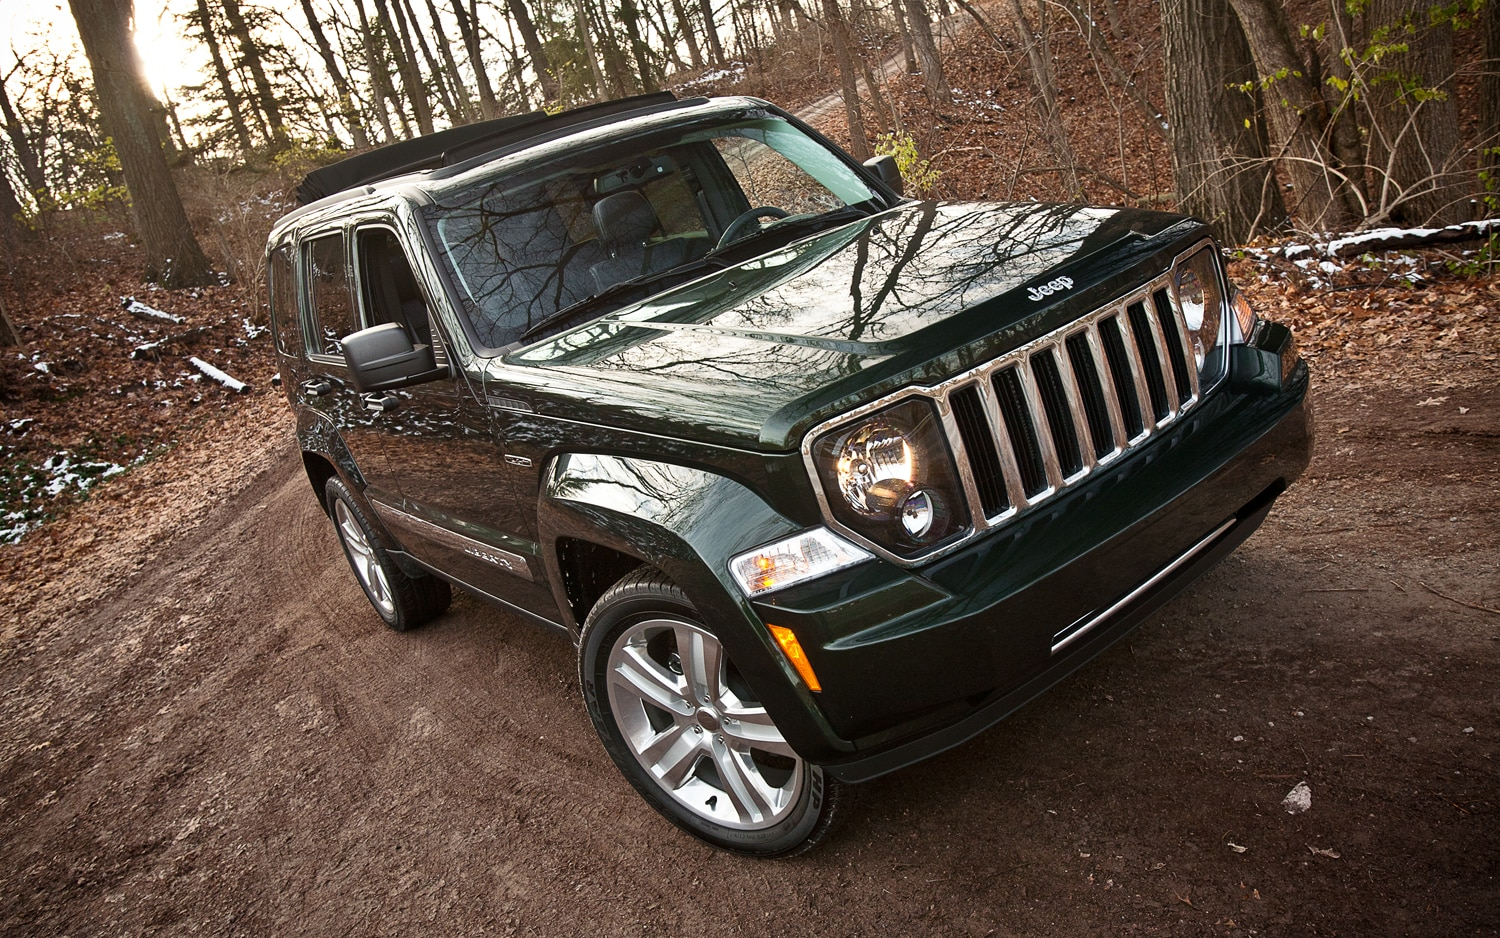 2013 Jeep Grand Cherokee For Sale >> 2012 Jeep Liberty Limited Jet Edition - Editors' Notebook - Automobile Magazine